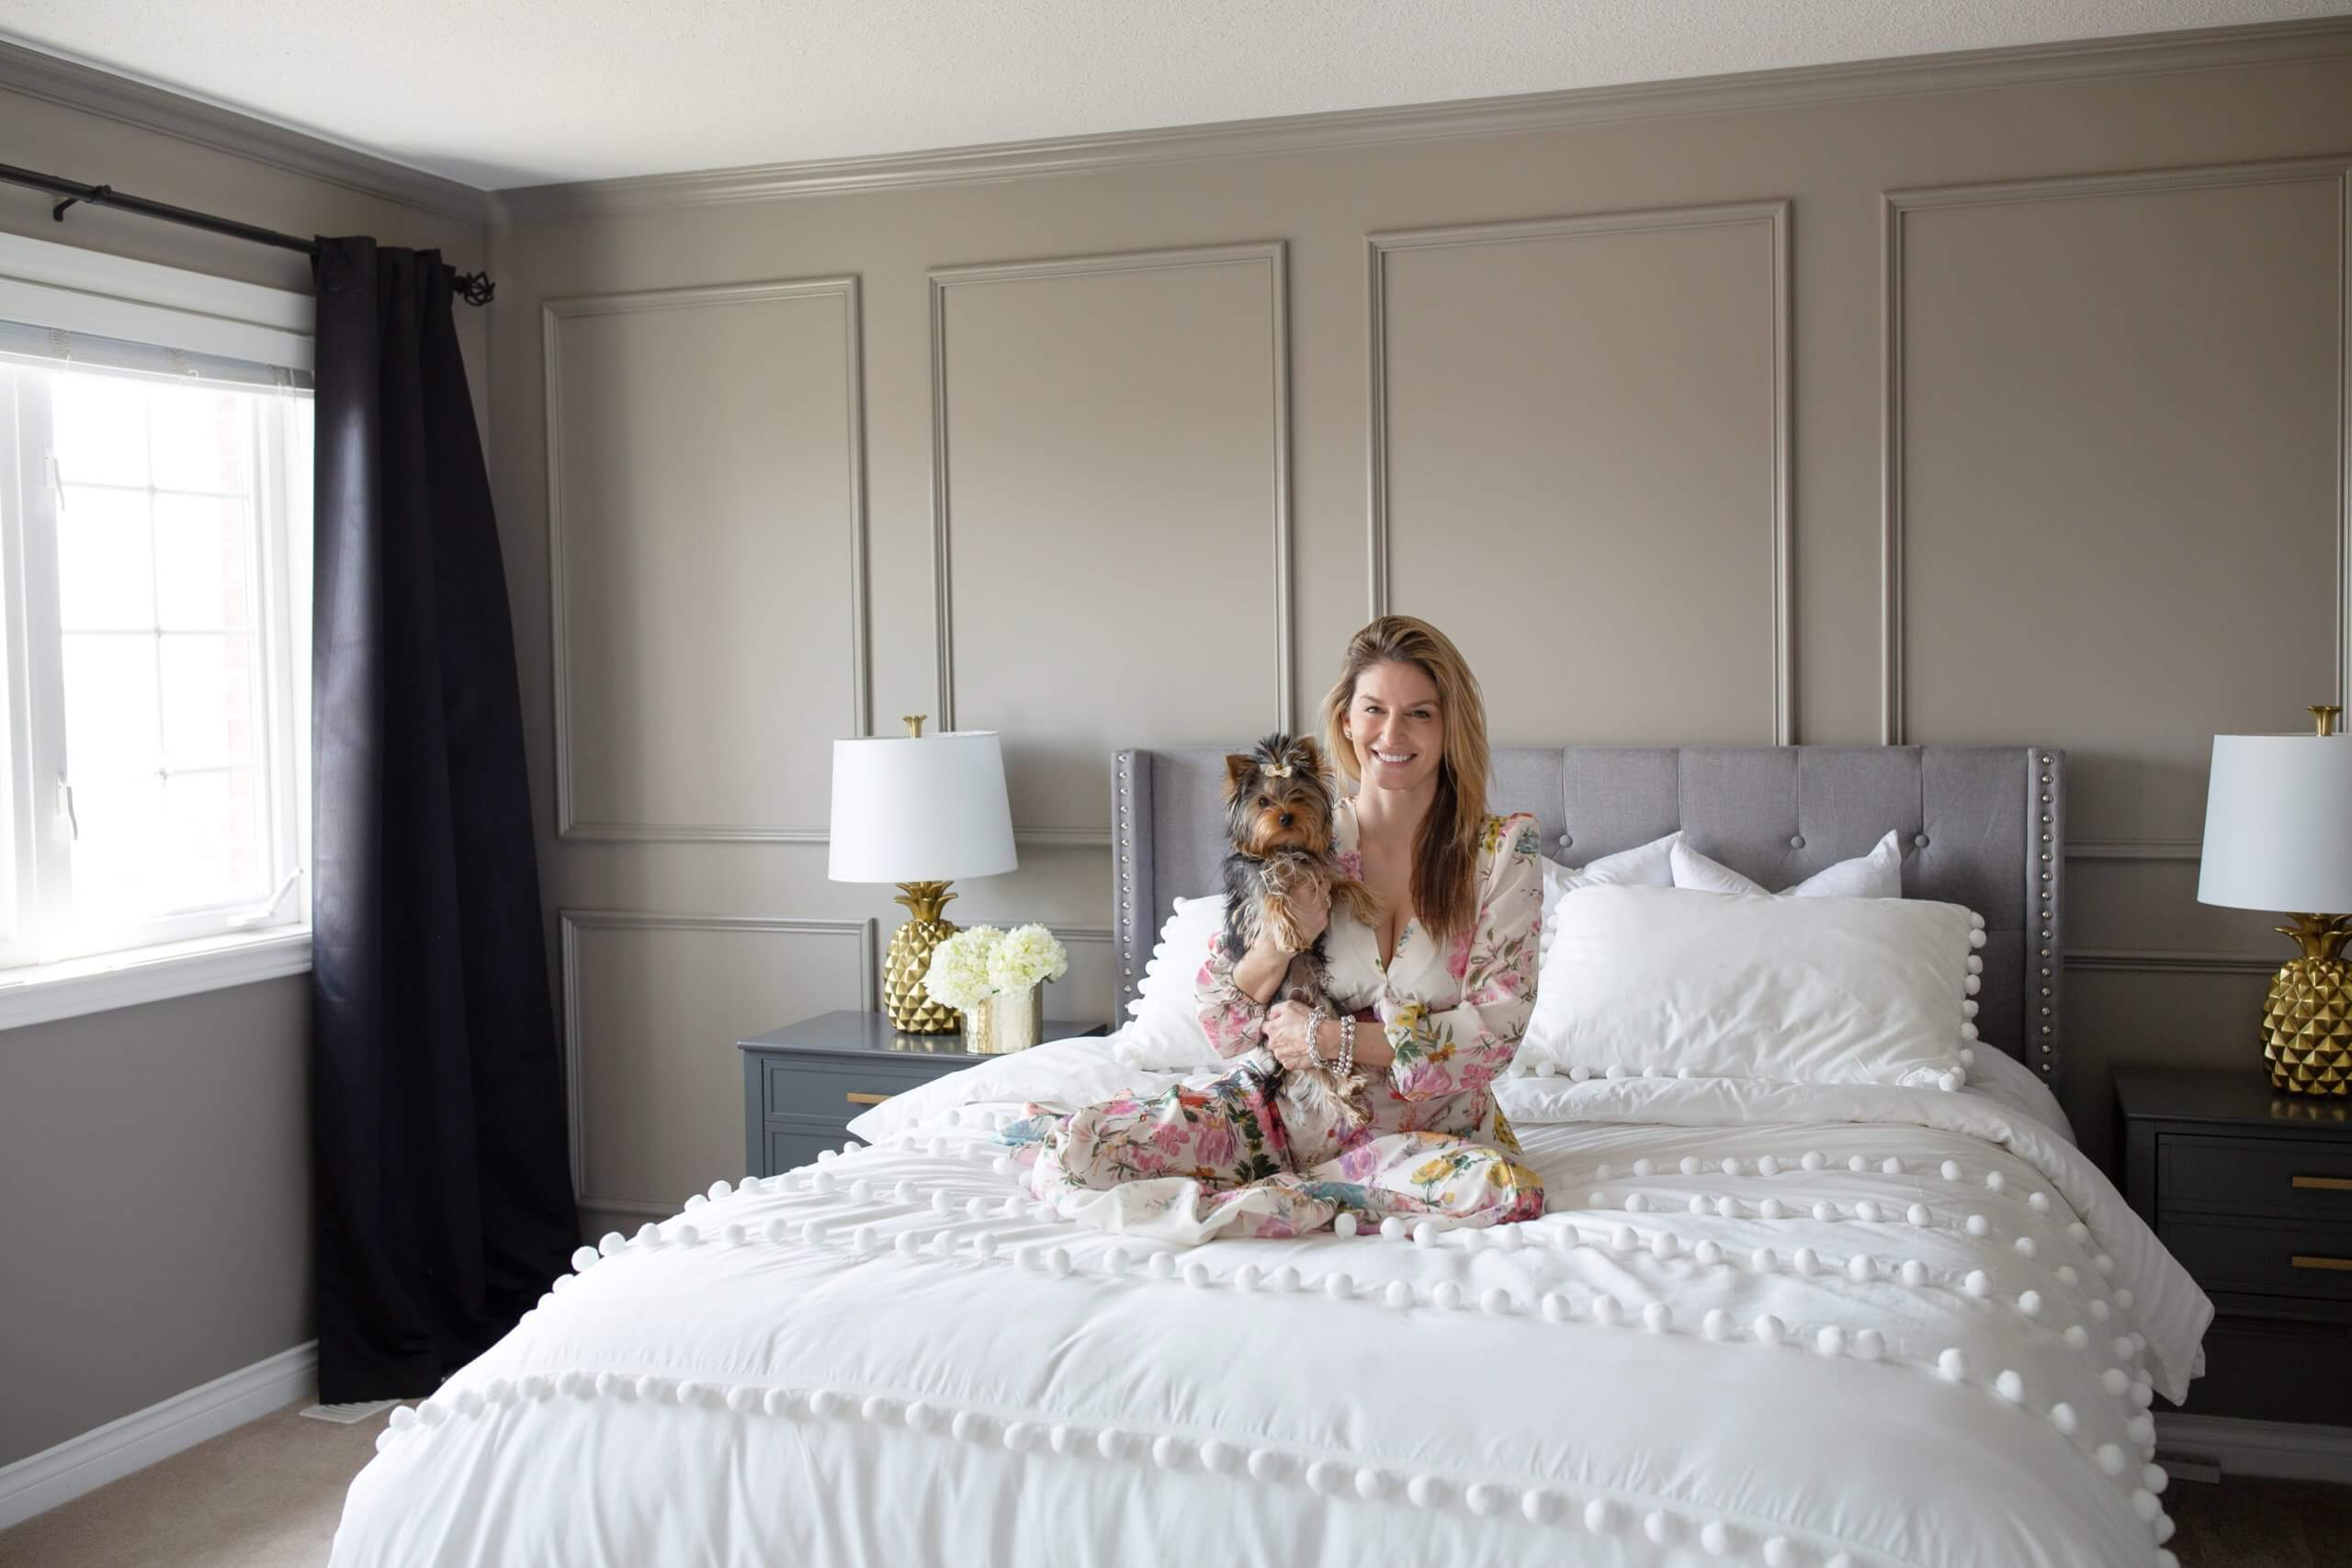 Our Bedroom Makeover with Wayfair! sparkleshinylove Mandy Furnis; bedroom makeover ideas